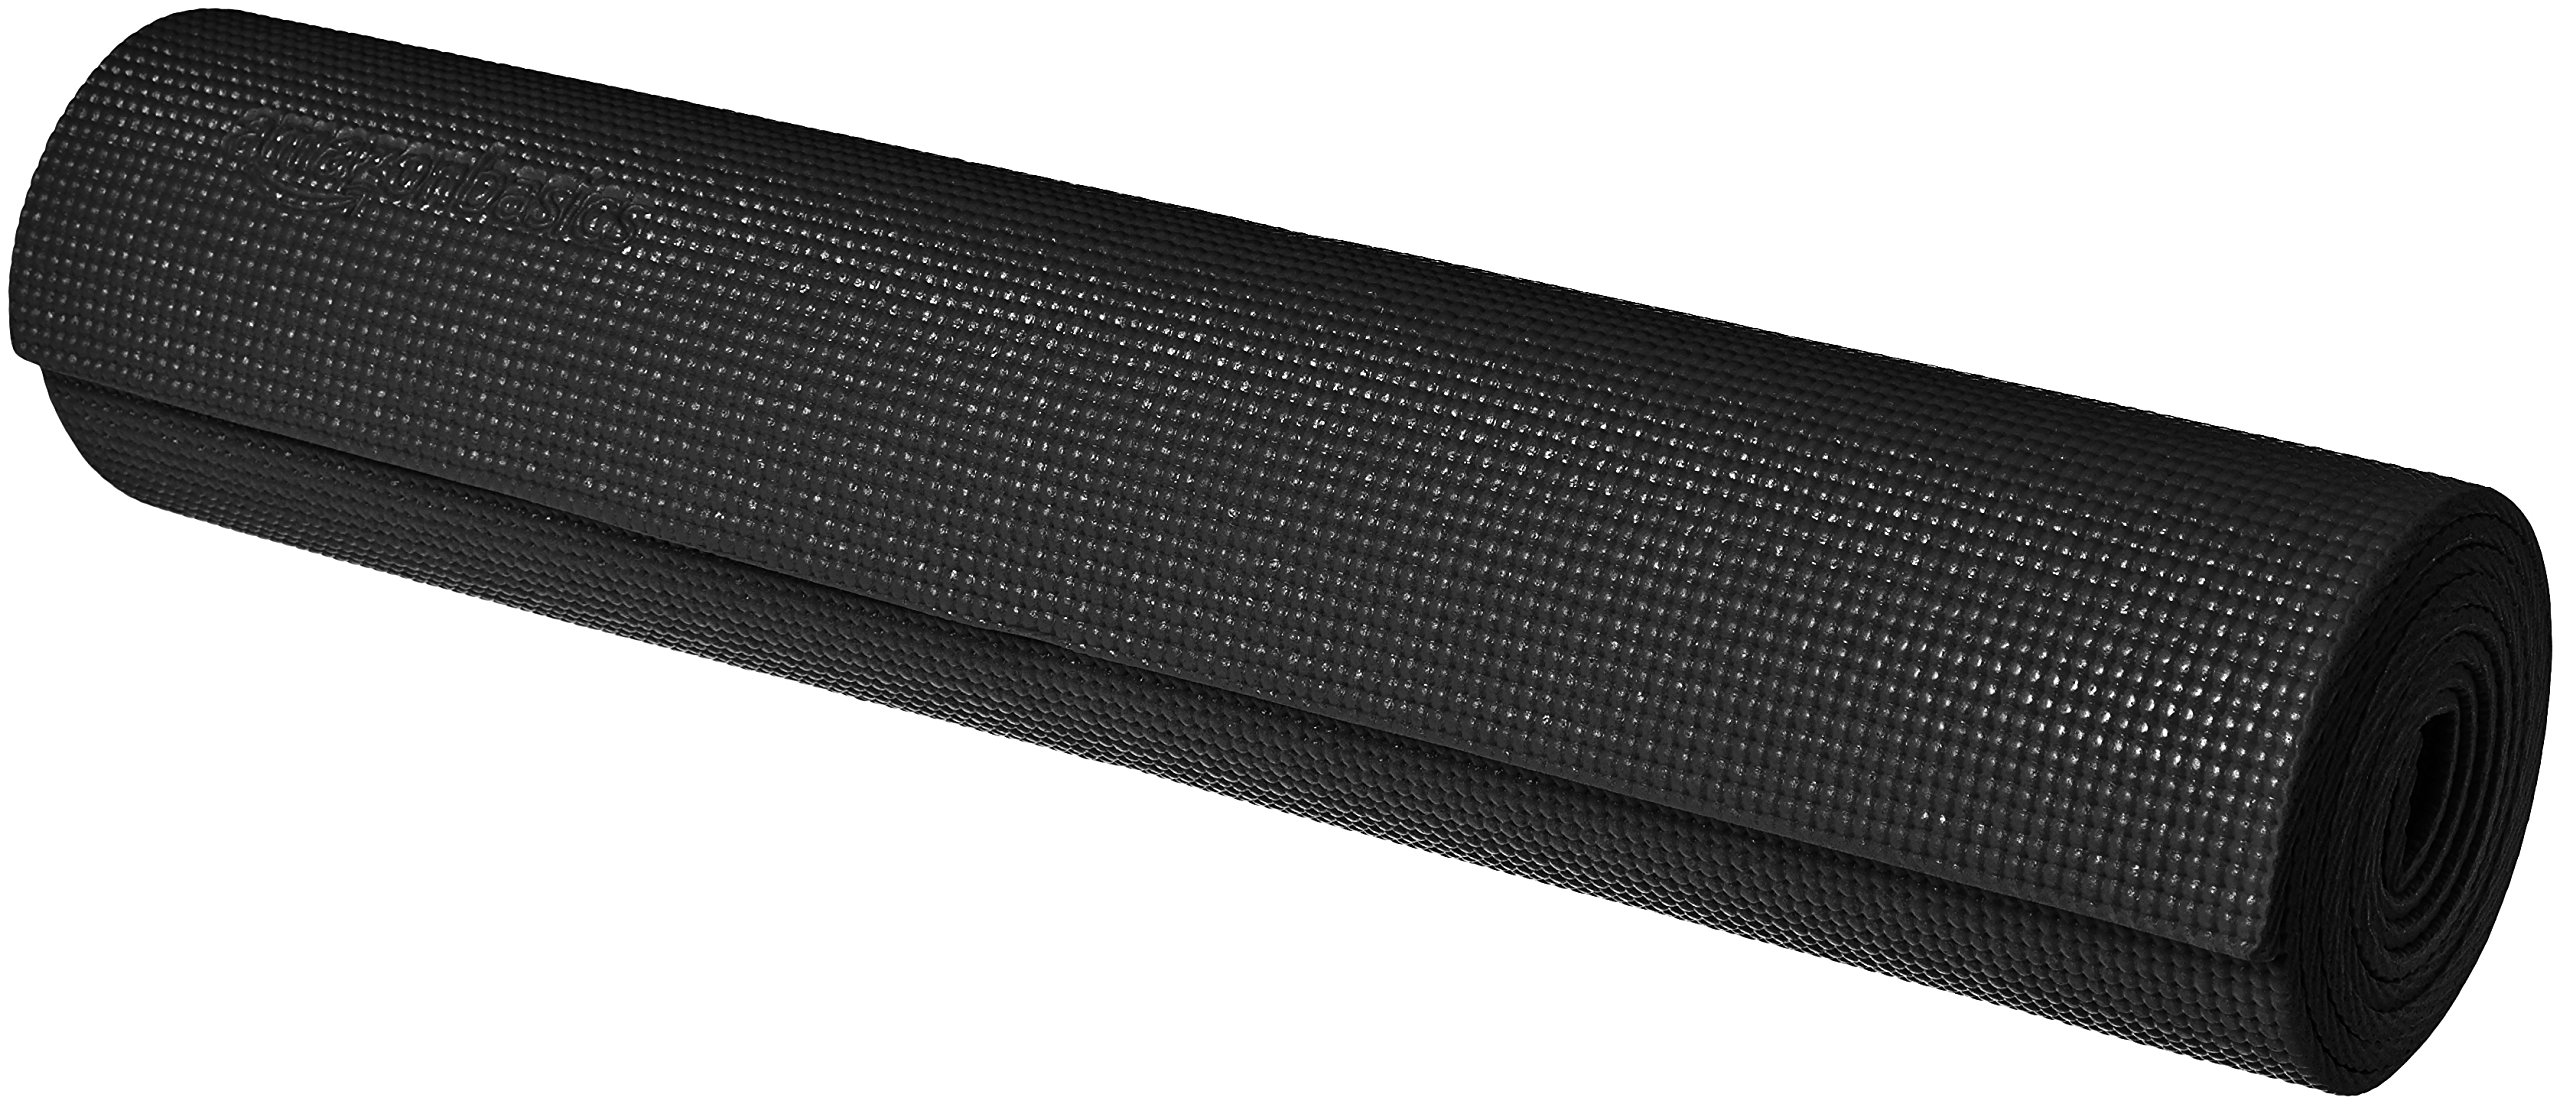 Amazonbasics Yoga Amp Exercise Mat With Carrying Strap